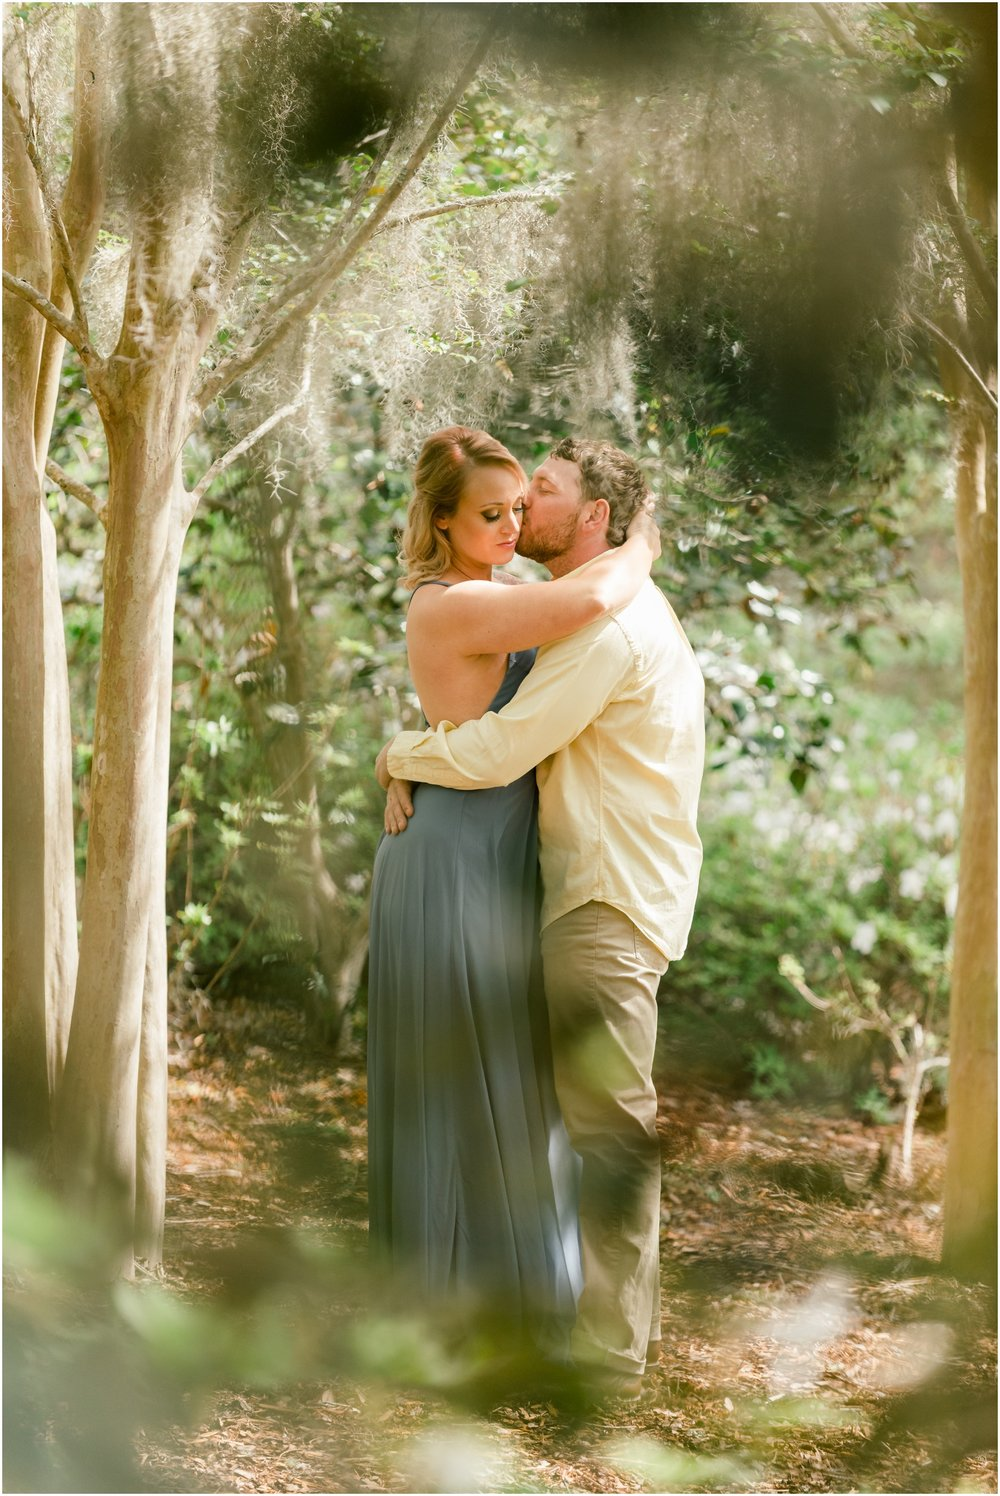 Mepkin-Abbey-Moncks-Corner-South-Carolina-Engagement-Session-Photos_0005.jpg